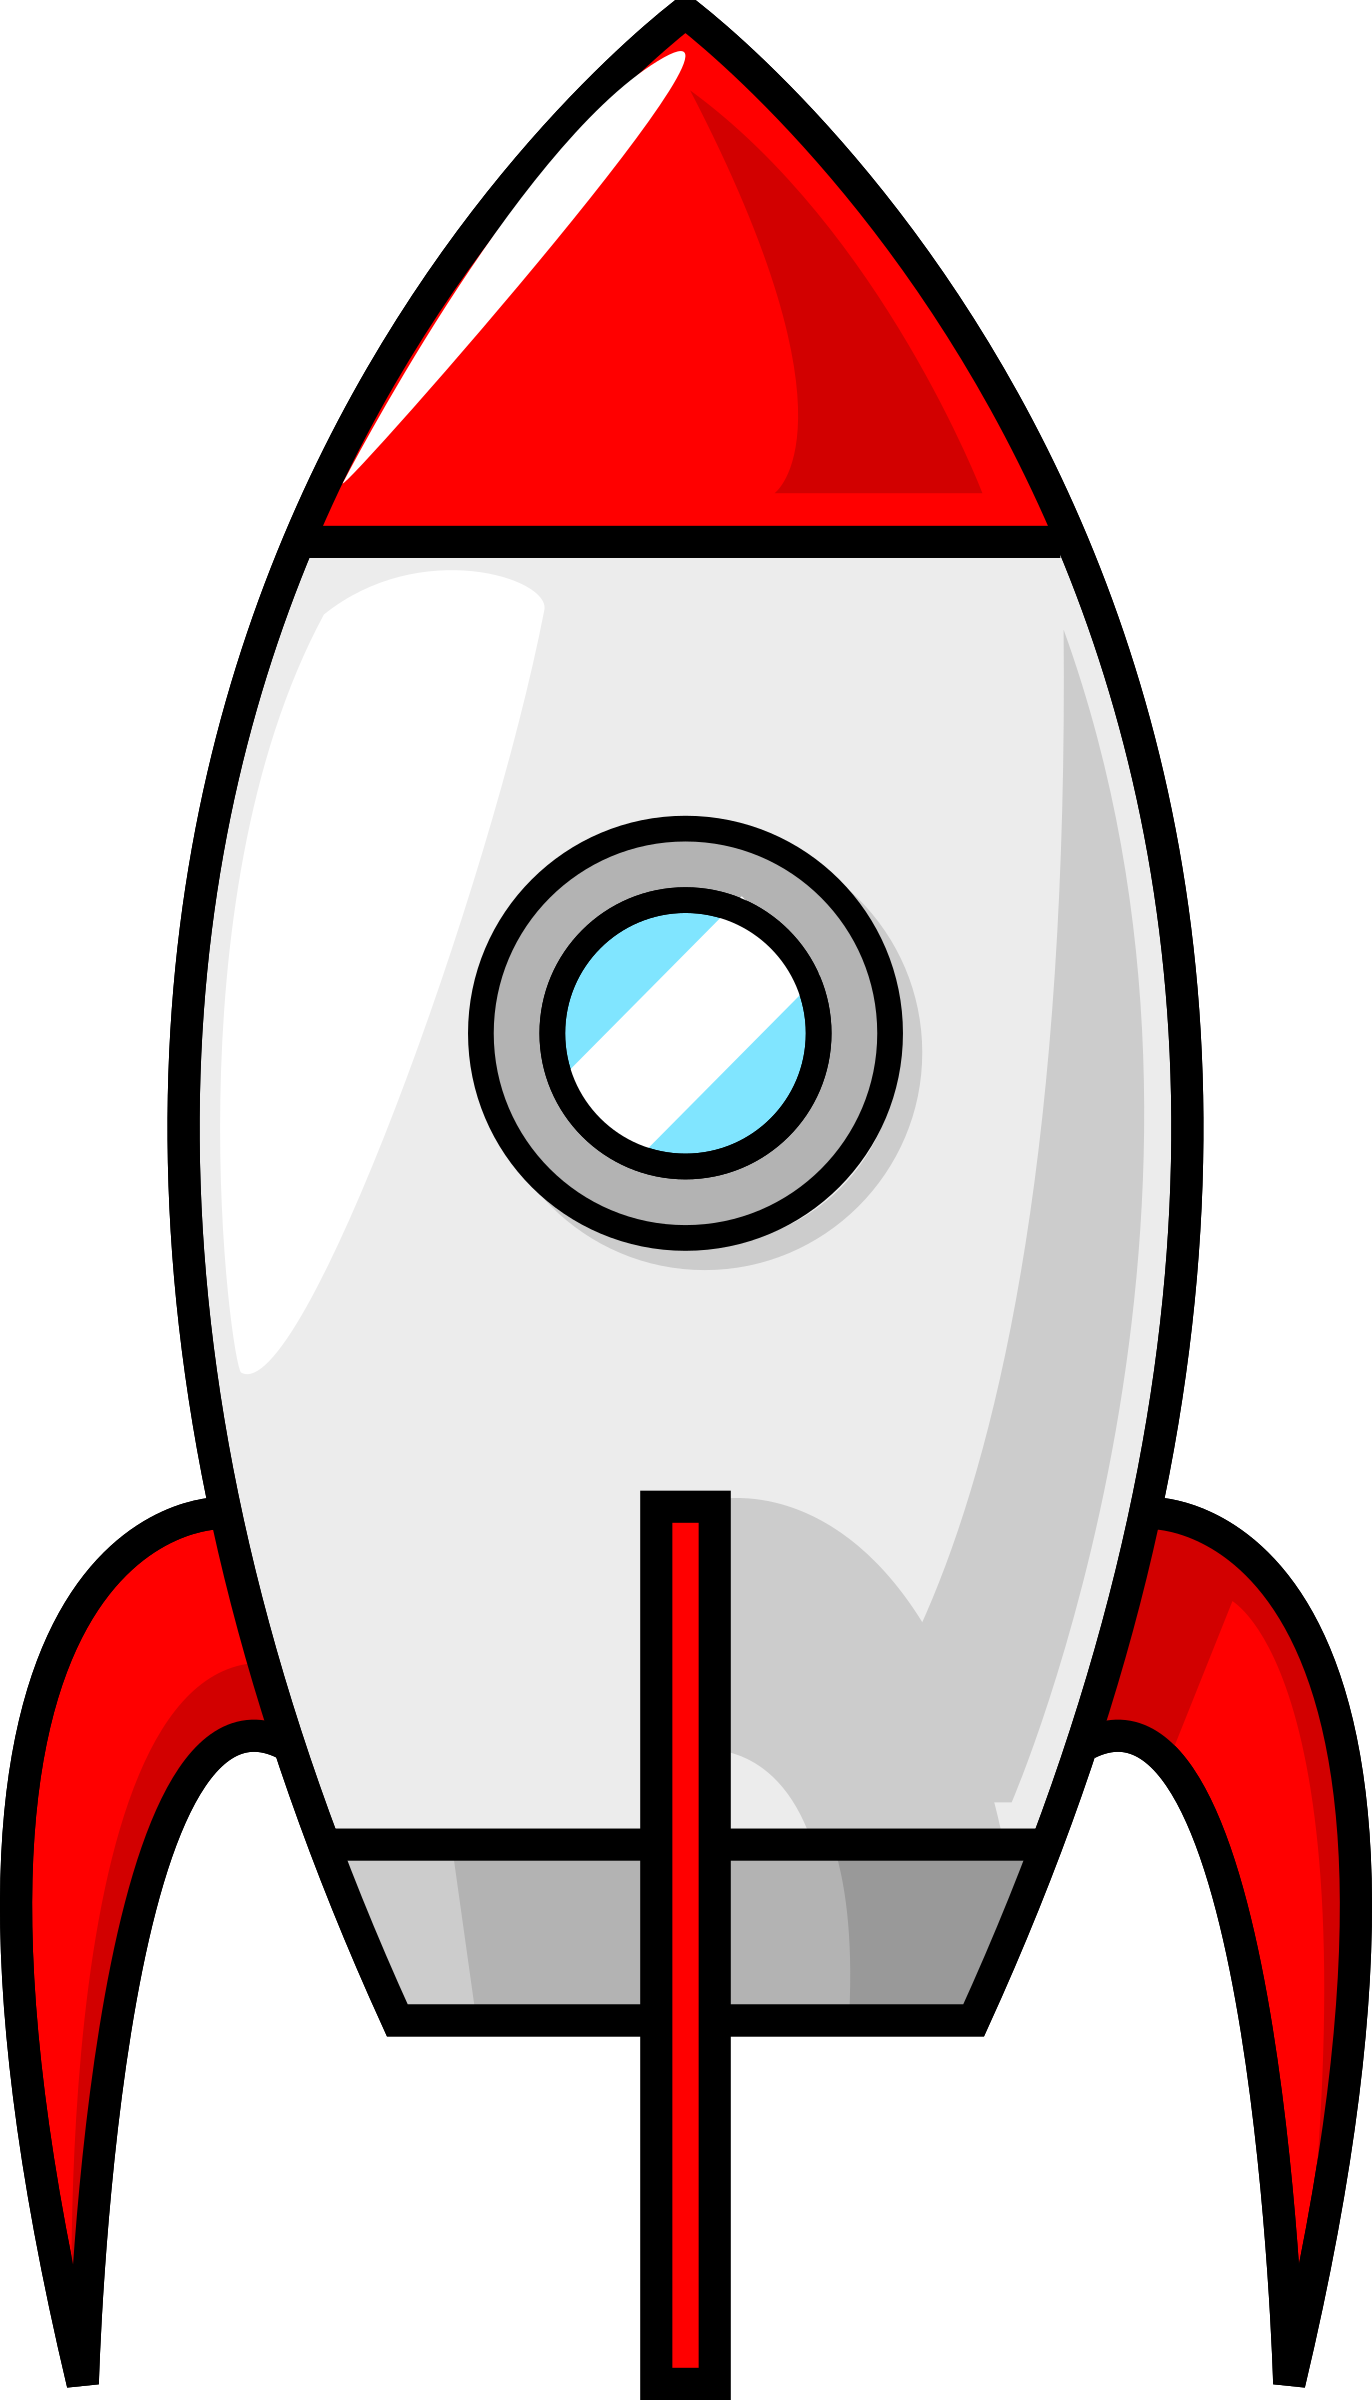 cartoon-moon-rocket.png